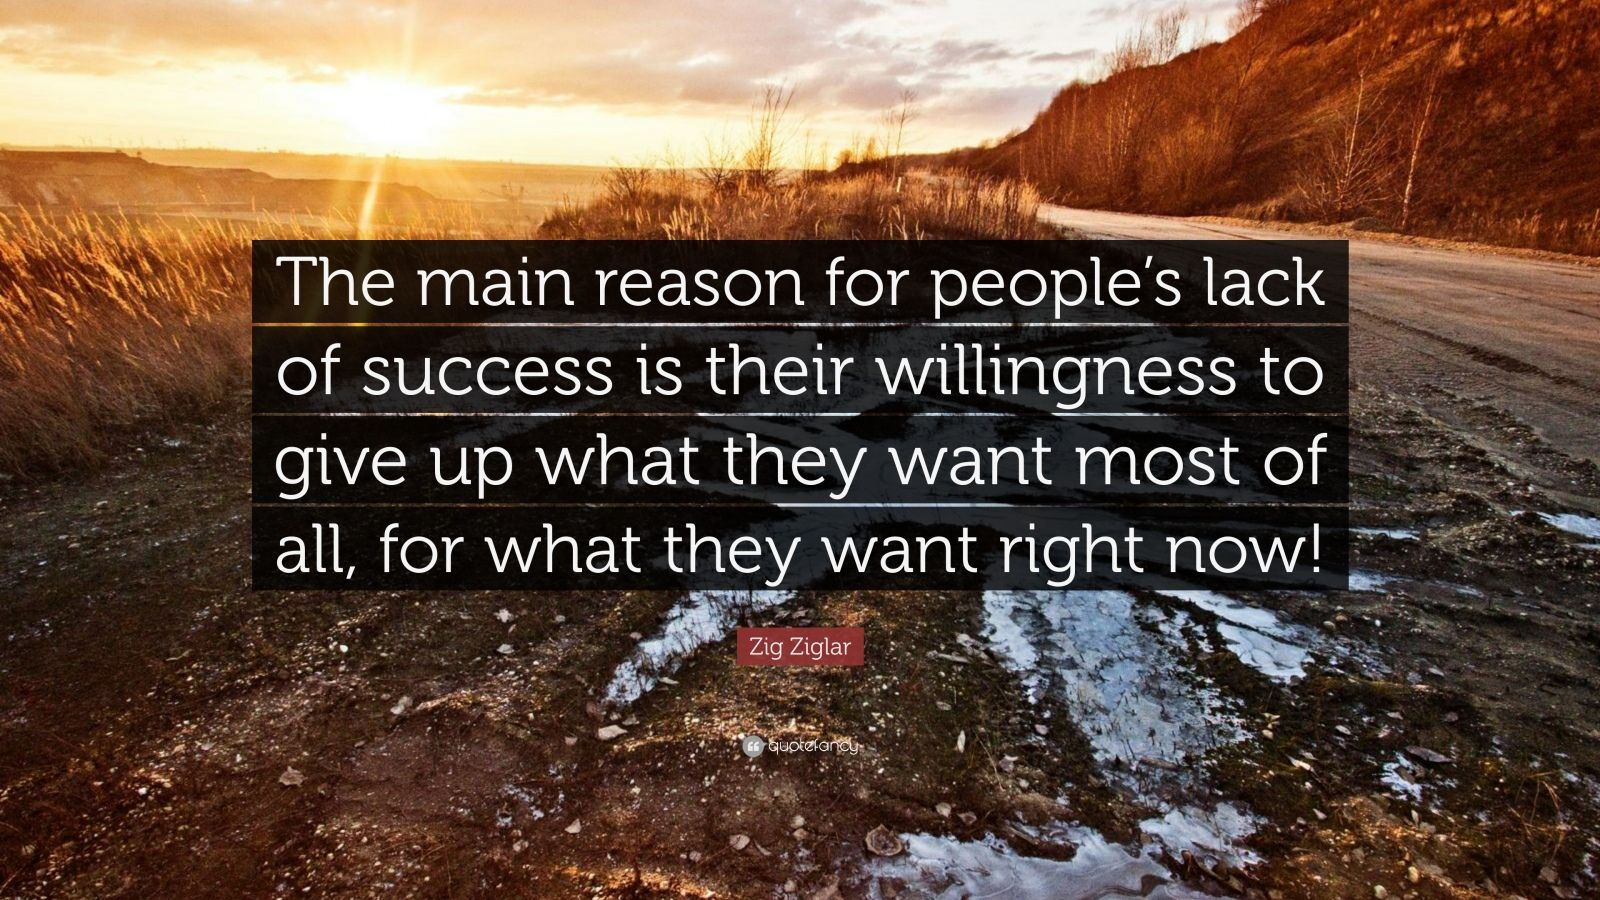 "Zig Ziglar Quote: ""The main reason for people's lack of success is their willingness to give up what they want most of all, for what they want right now!"""